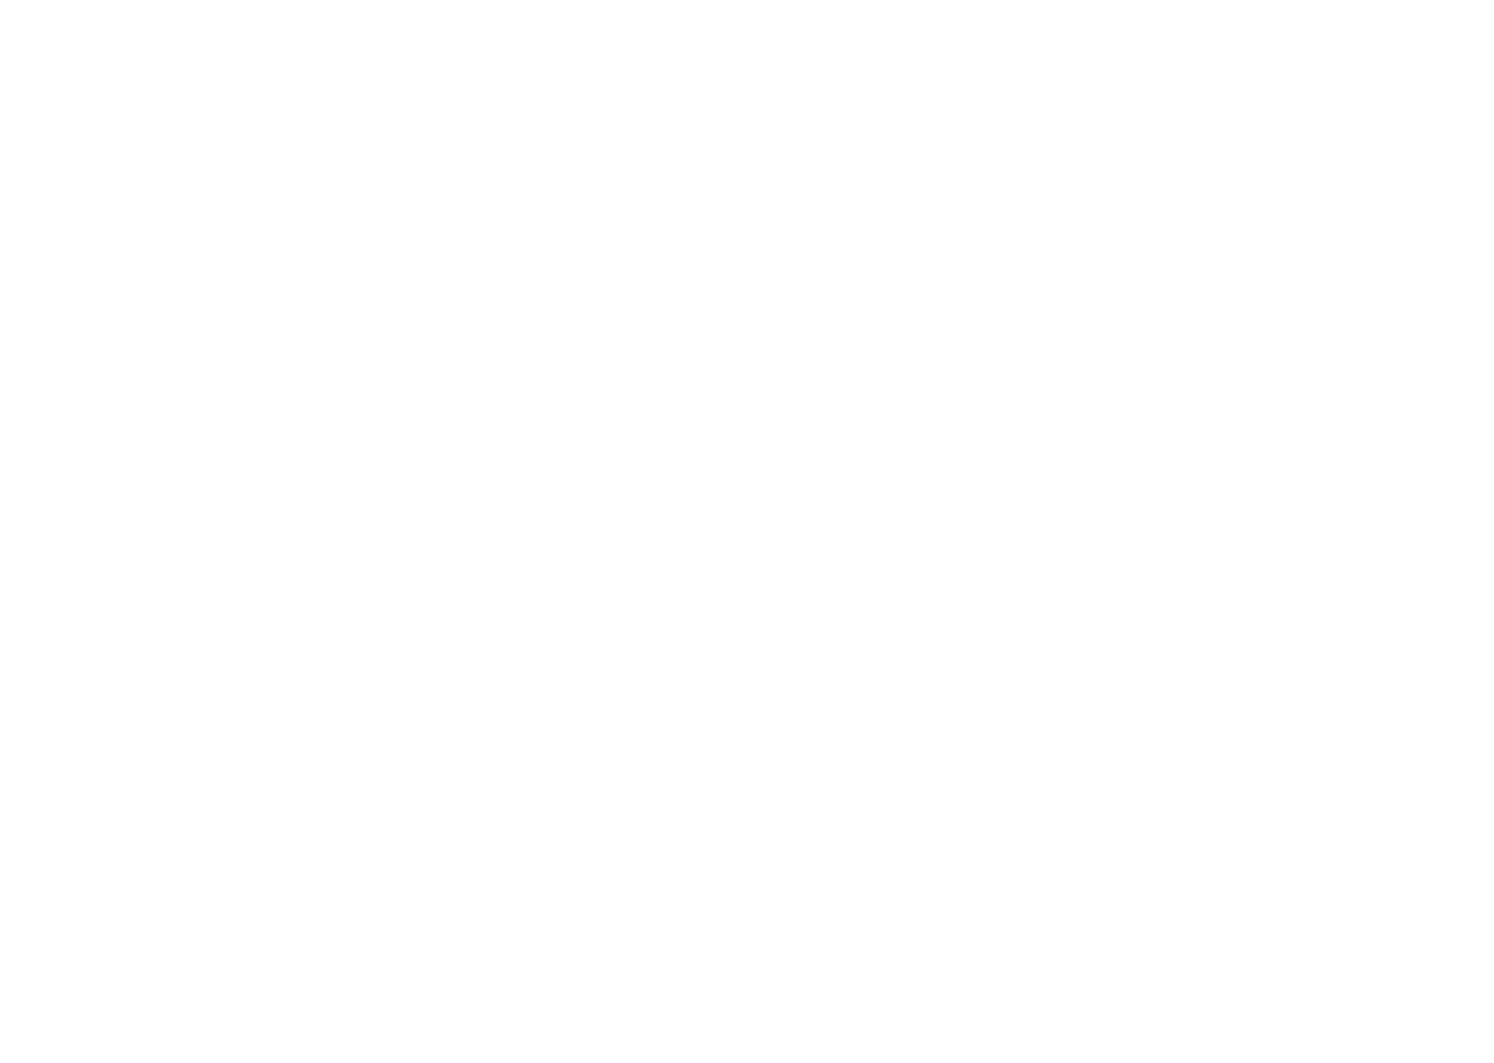 Cloud 9 Massage & Spa, Your Float Haven - logo